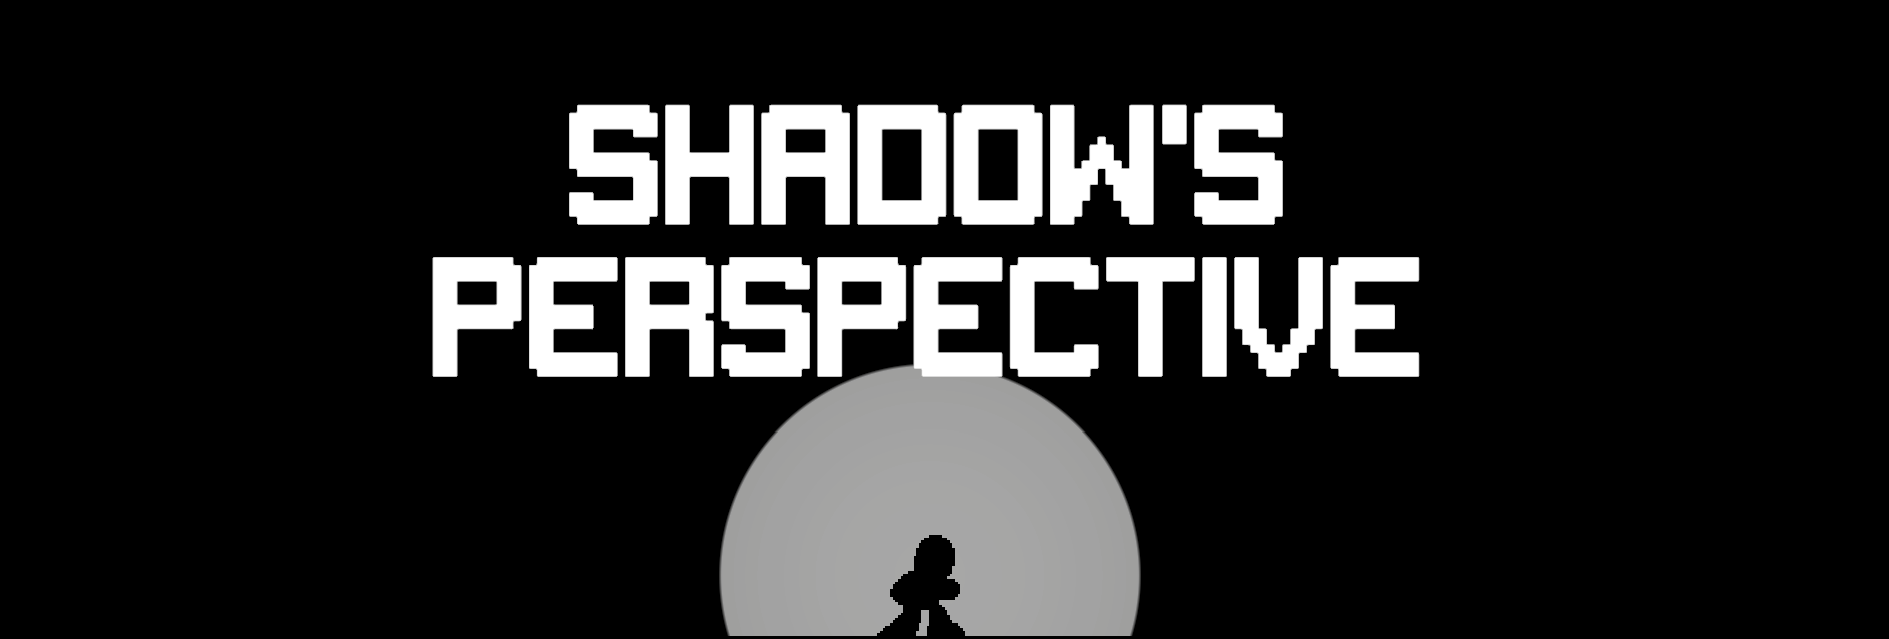 Shadow's perspective